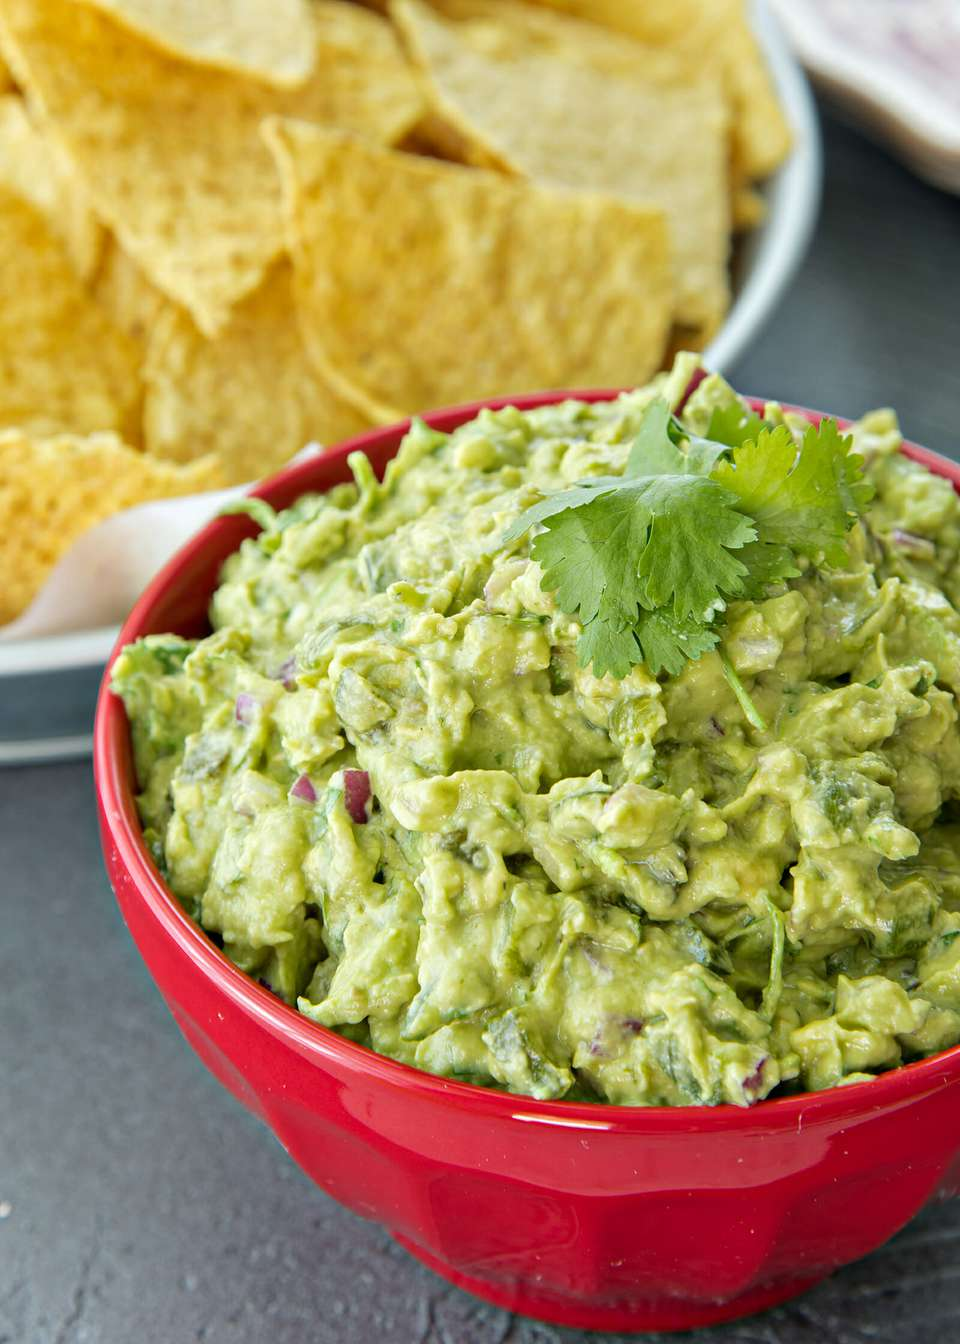 Spicy Guacamole Recipe - guacamole in a bowl wtih chips on the side